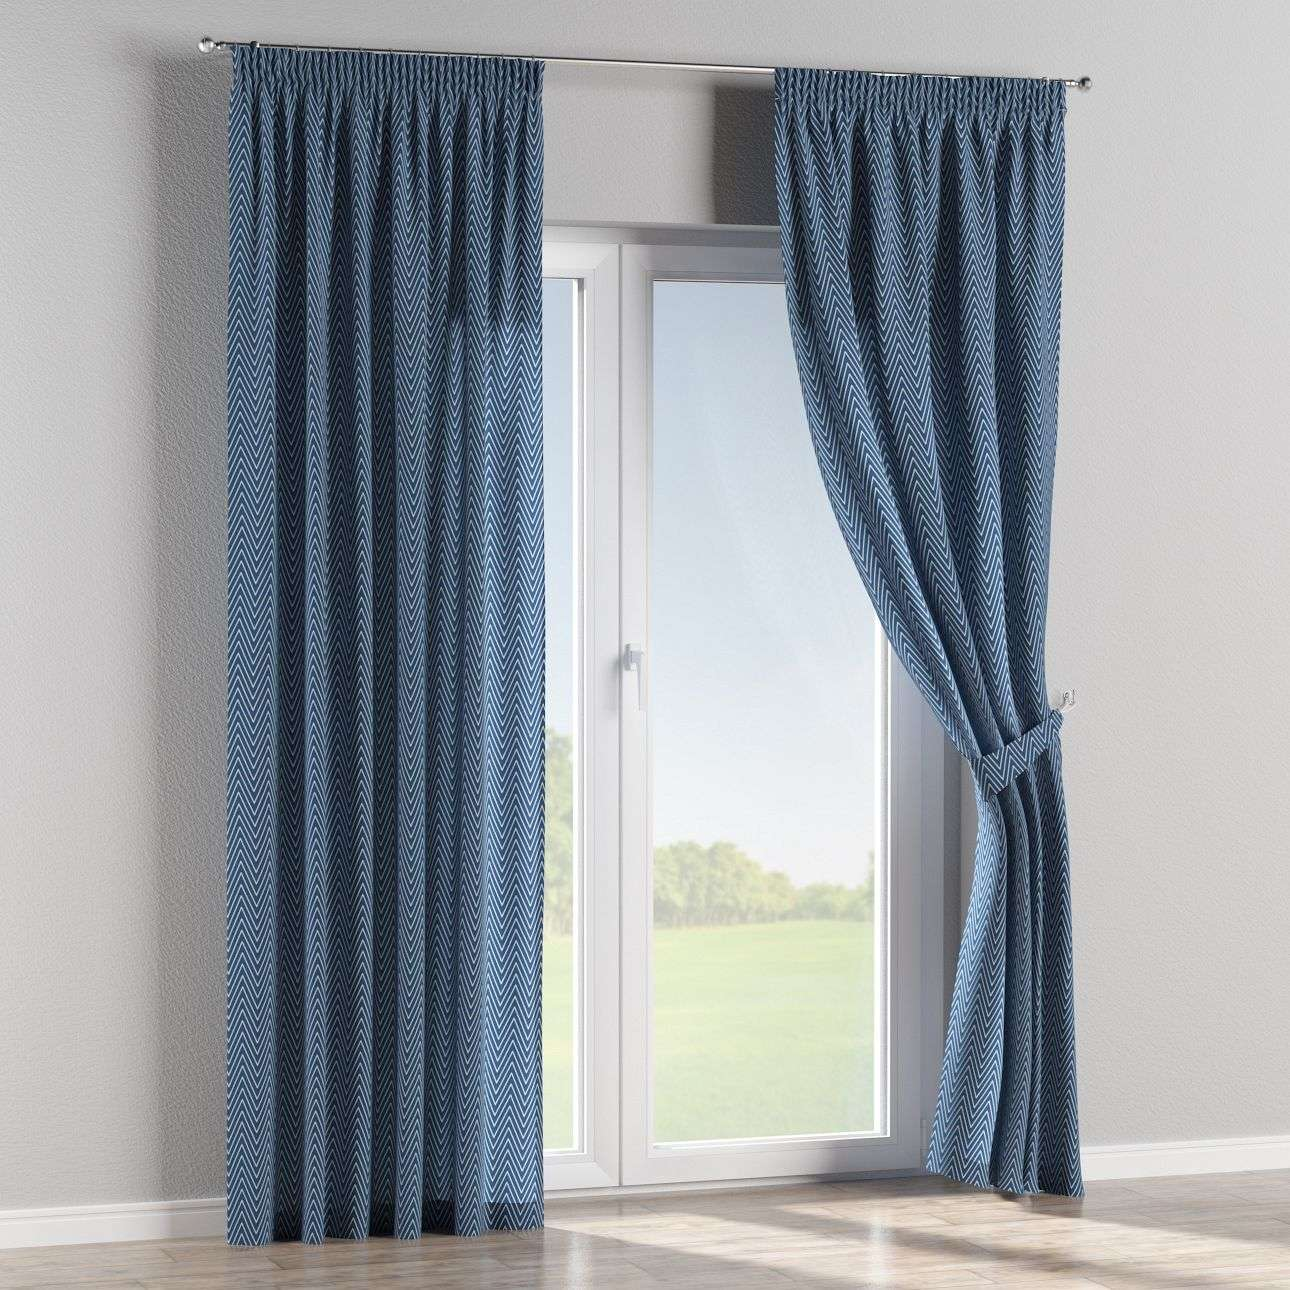 Pencil pleat curtains 130 × 260 cm (51 × 102 inch) in collection Brooklyn, fabric: 137-88